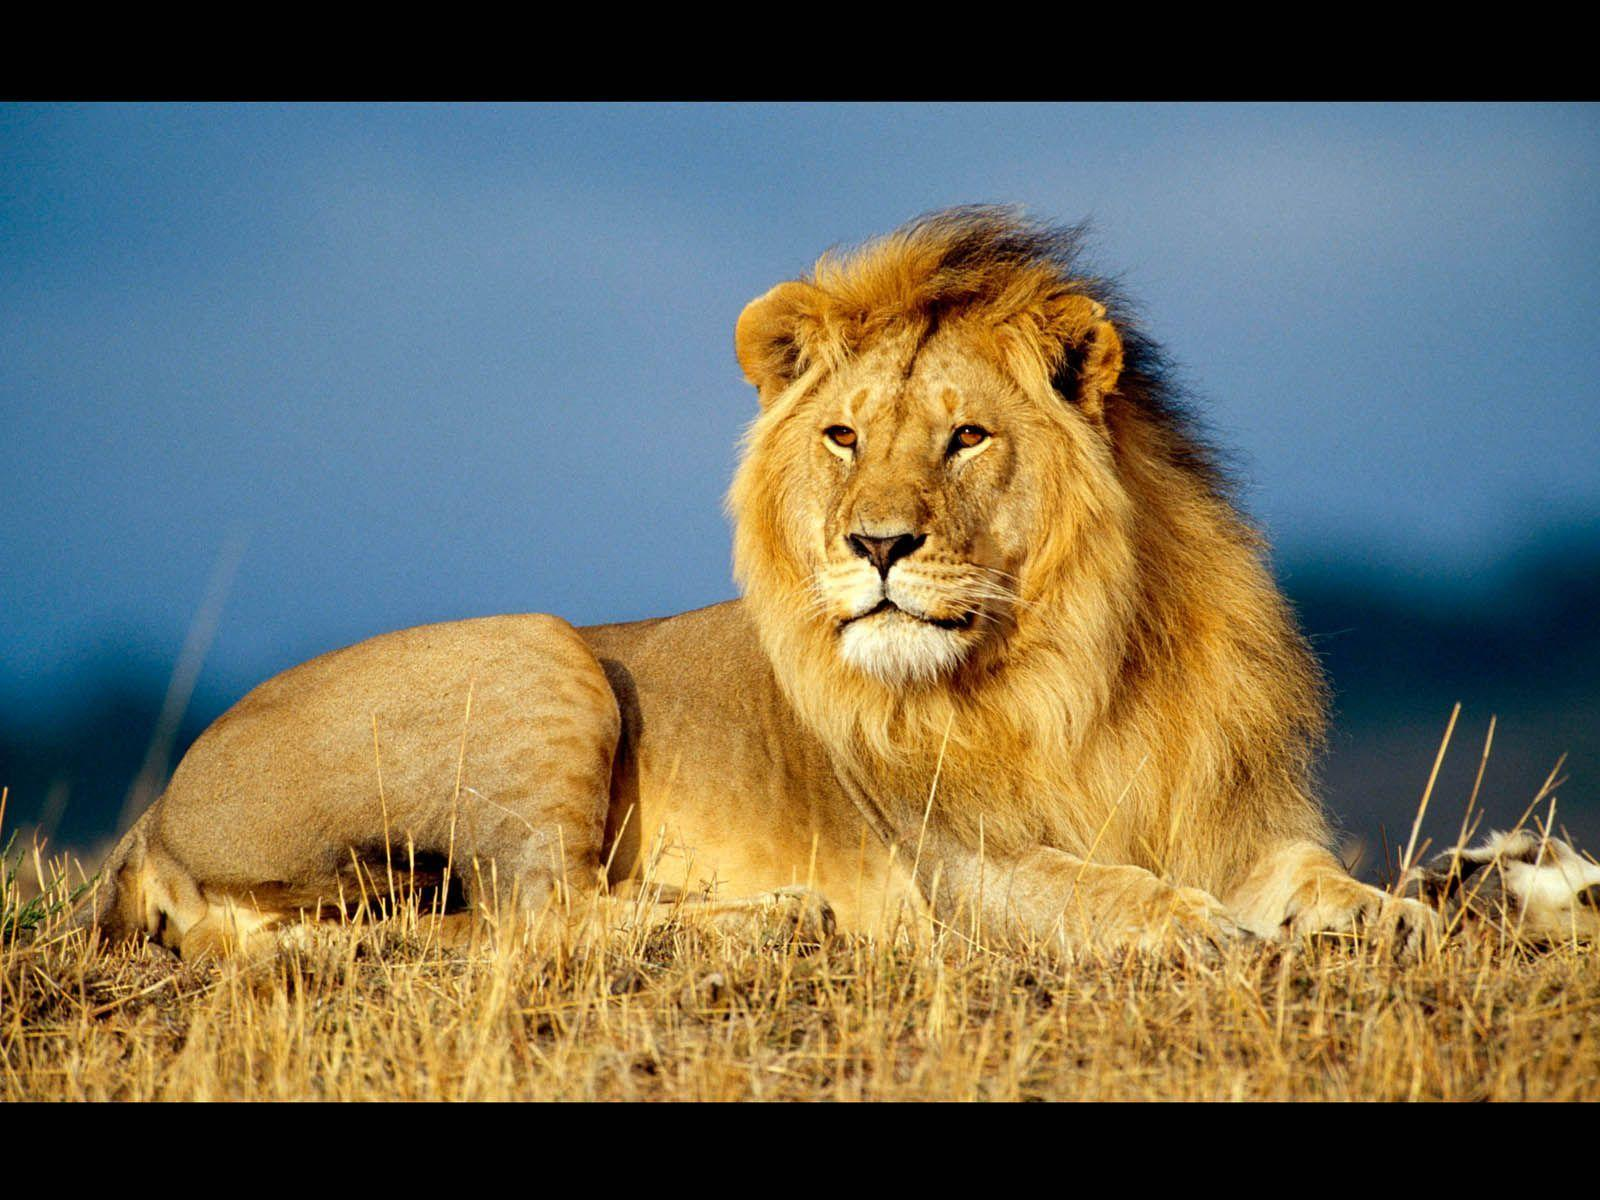 A Place For Free HD Wallpapers | Desktop Wallpapers: Male Lion ...